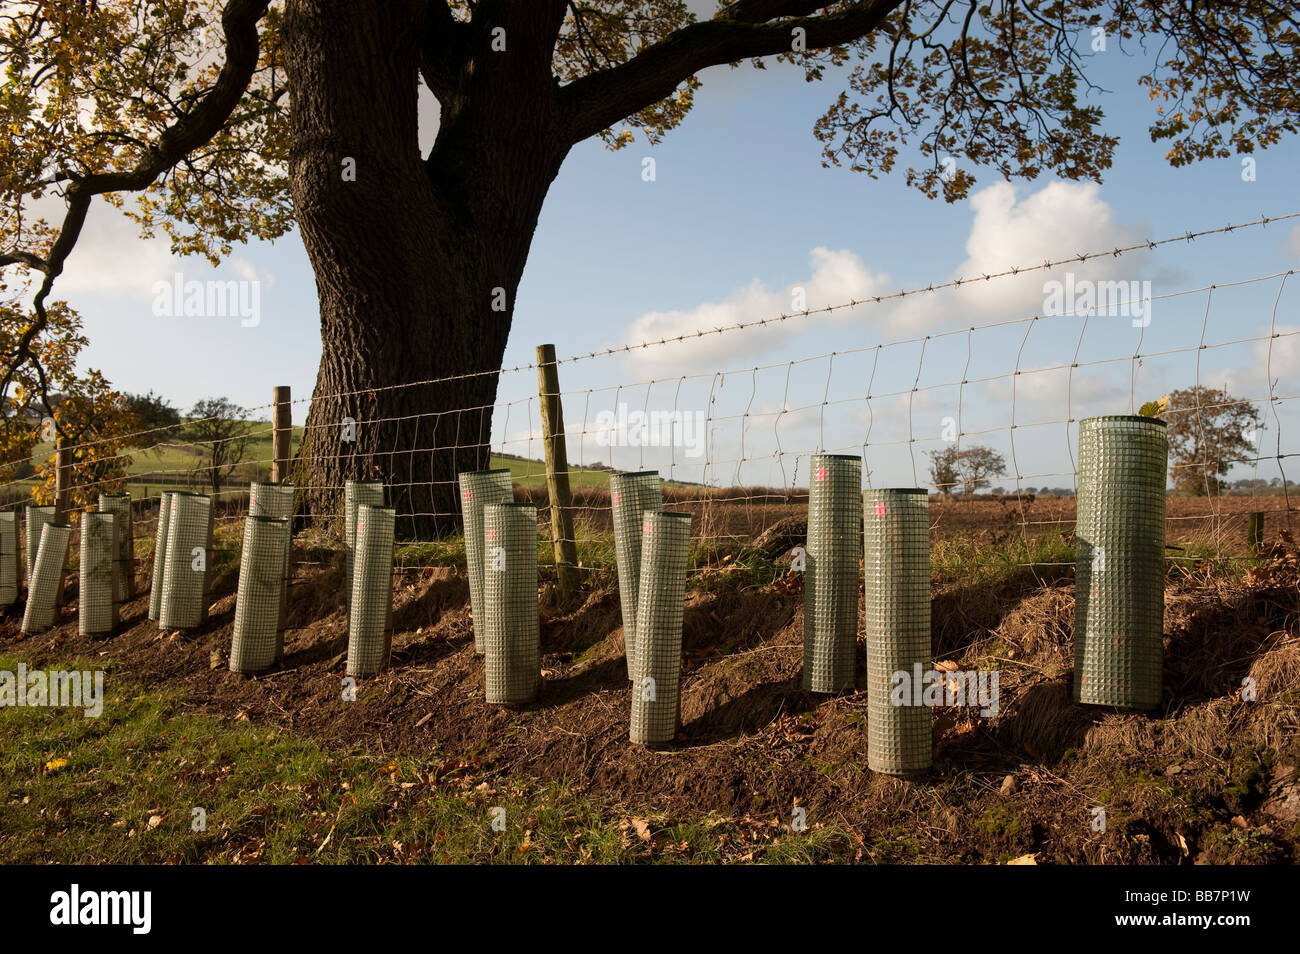 Newly planted hedge with young trees protected with plastic guards Cumbria  - Stock Image